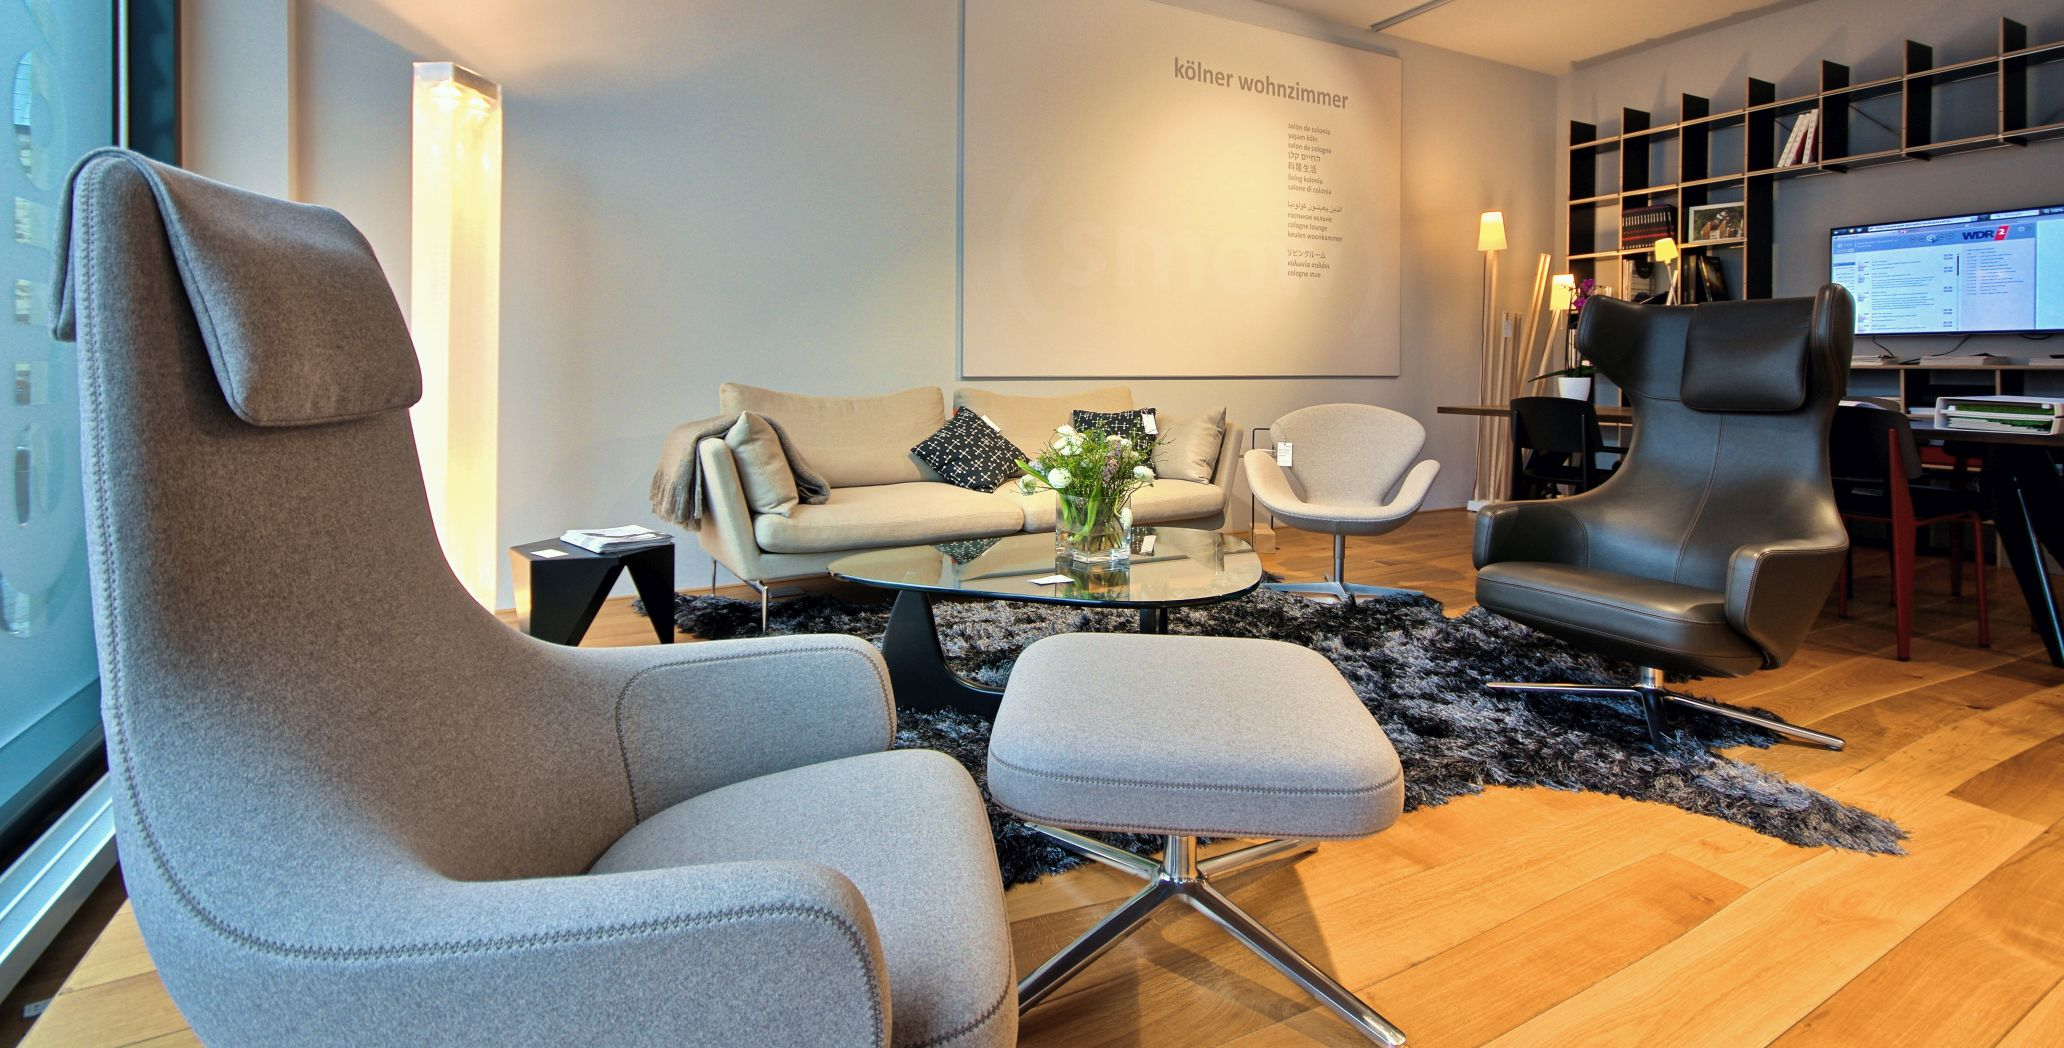 Lounge area smow showroom Cologne